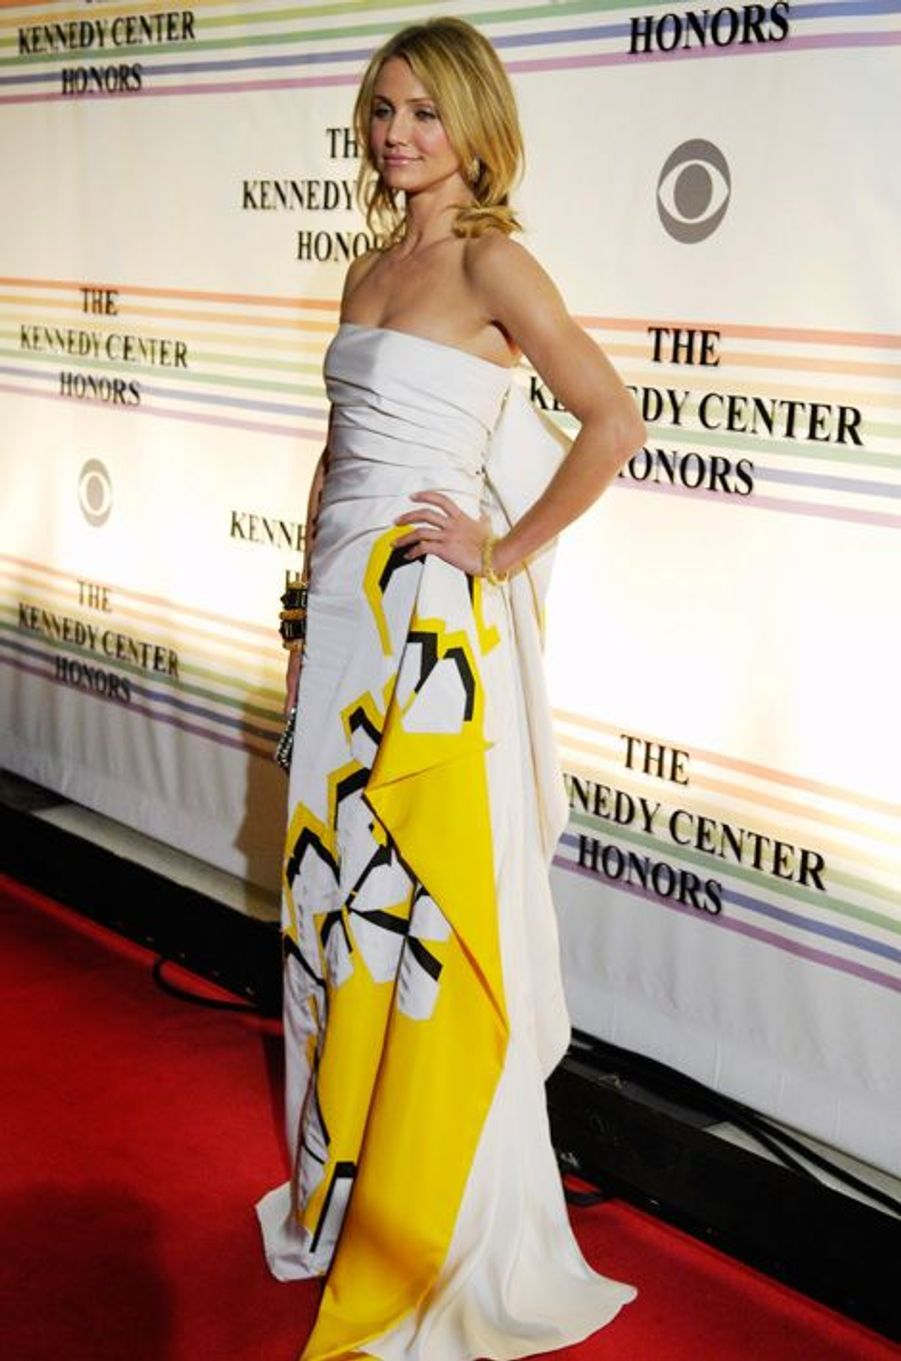 En décembre 2007 au Kennedy Center Honors show de Washington